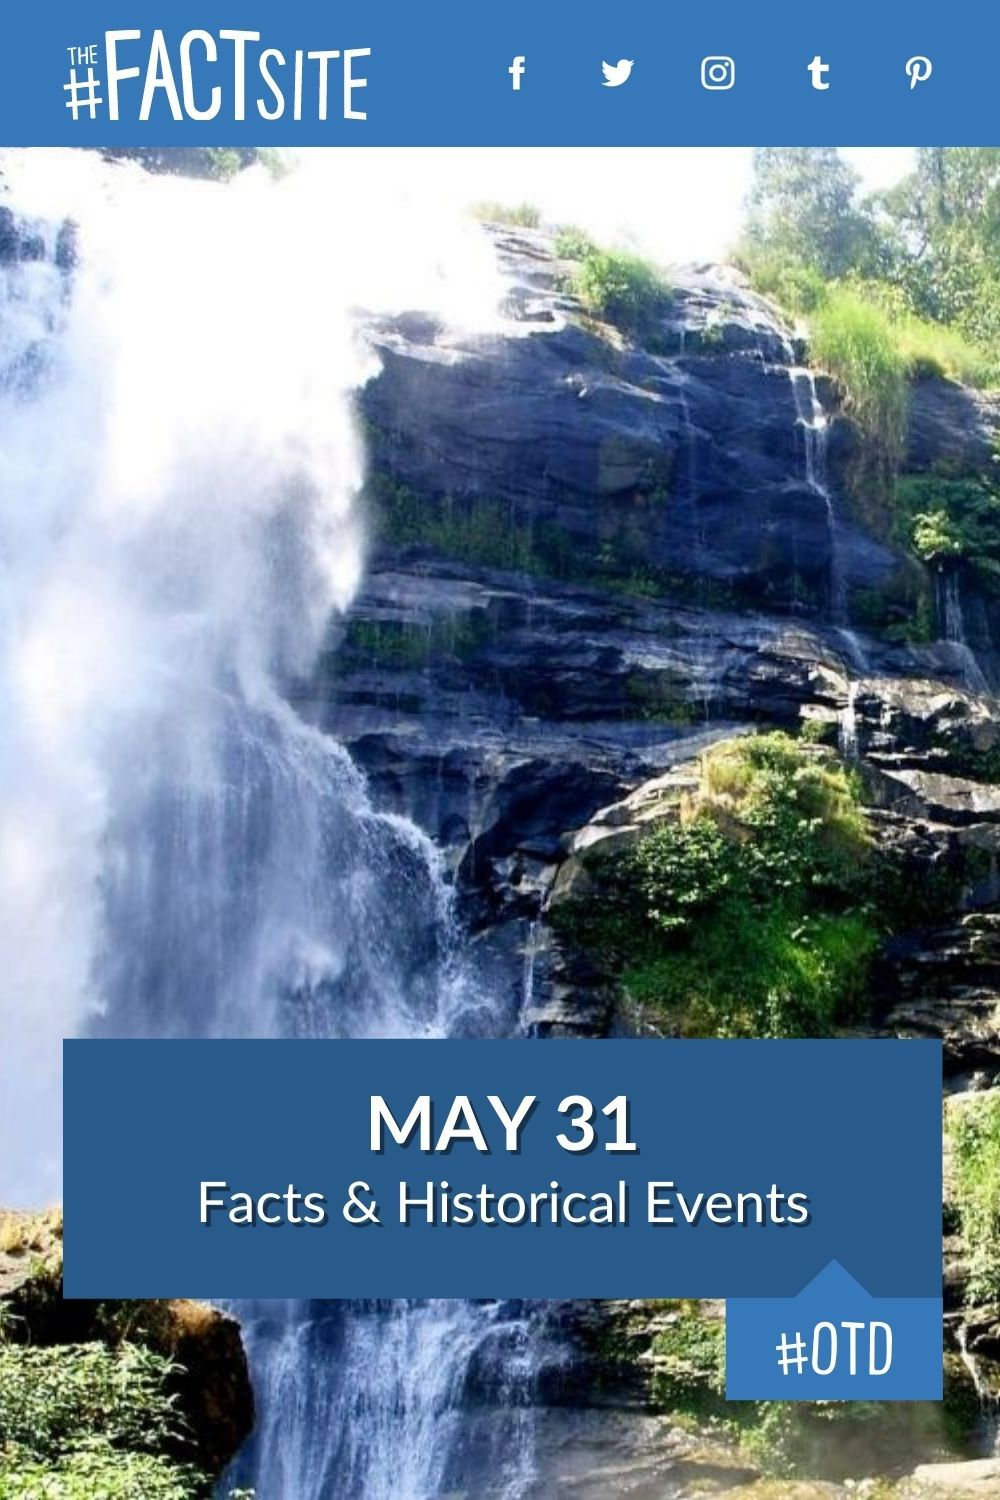 Facts & Historic Events That Happened on May 31